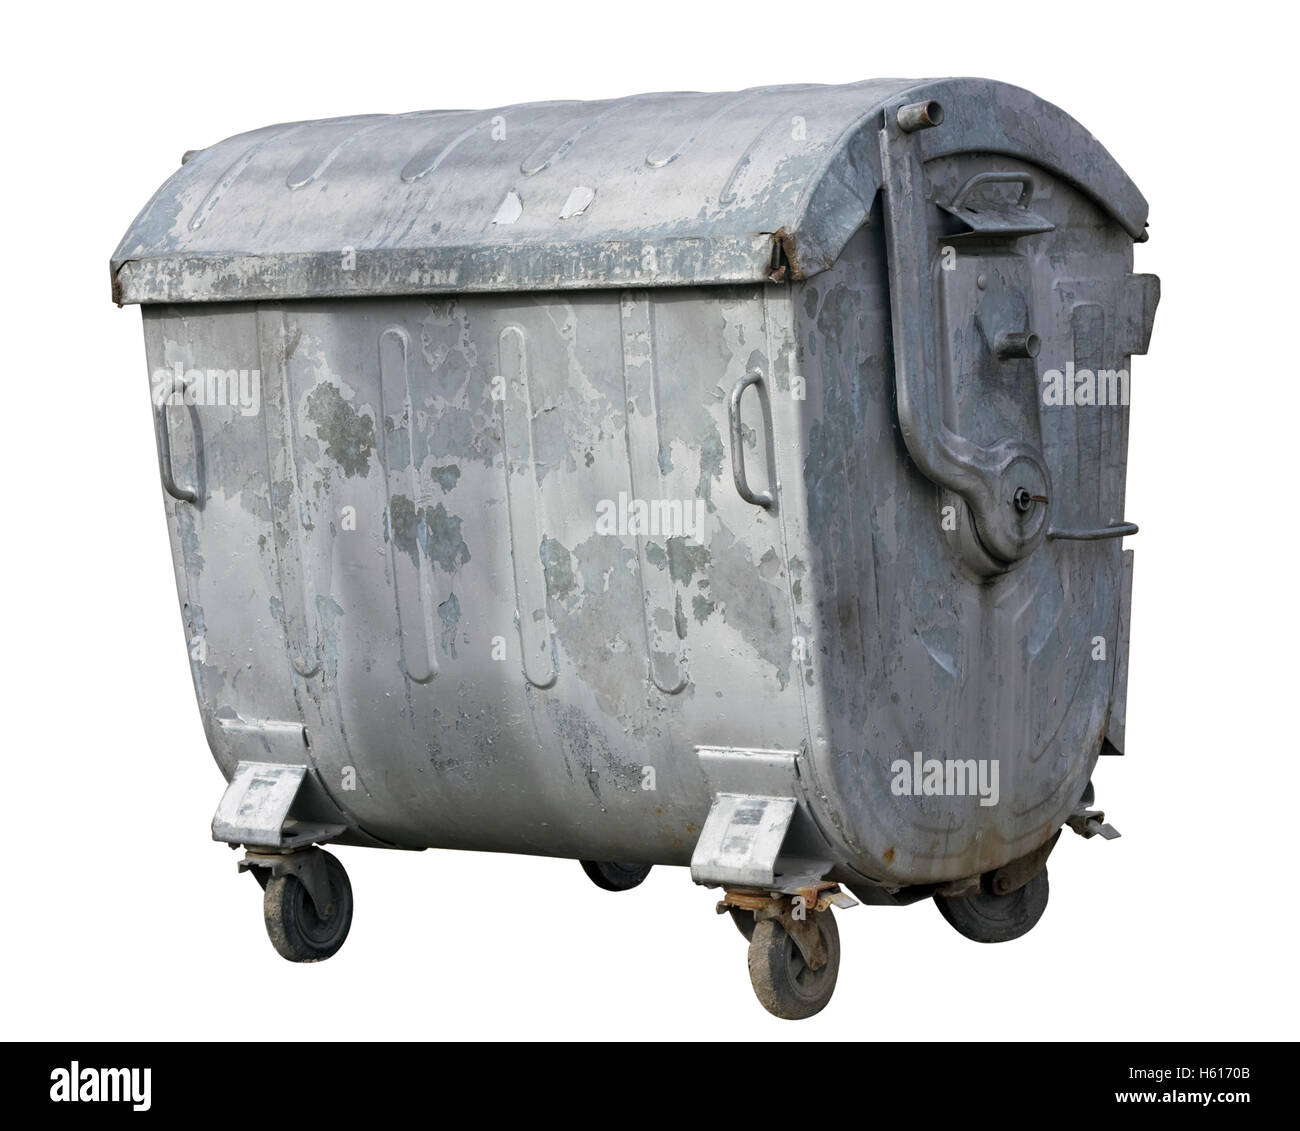 Retro steel ragged rusted  galvanized trash bin. Isolated with patch - Stock Image